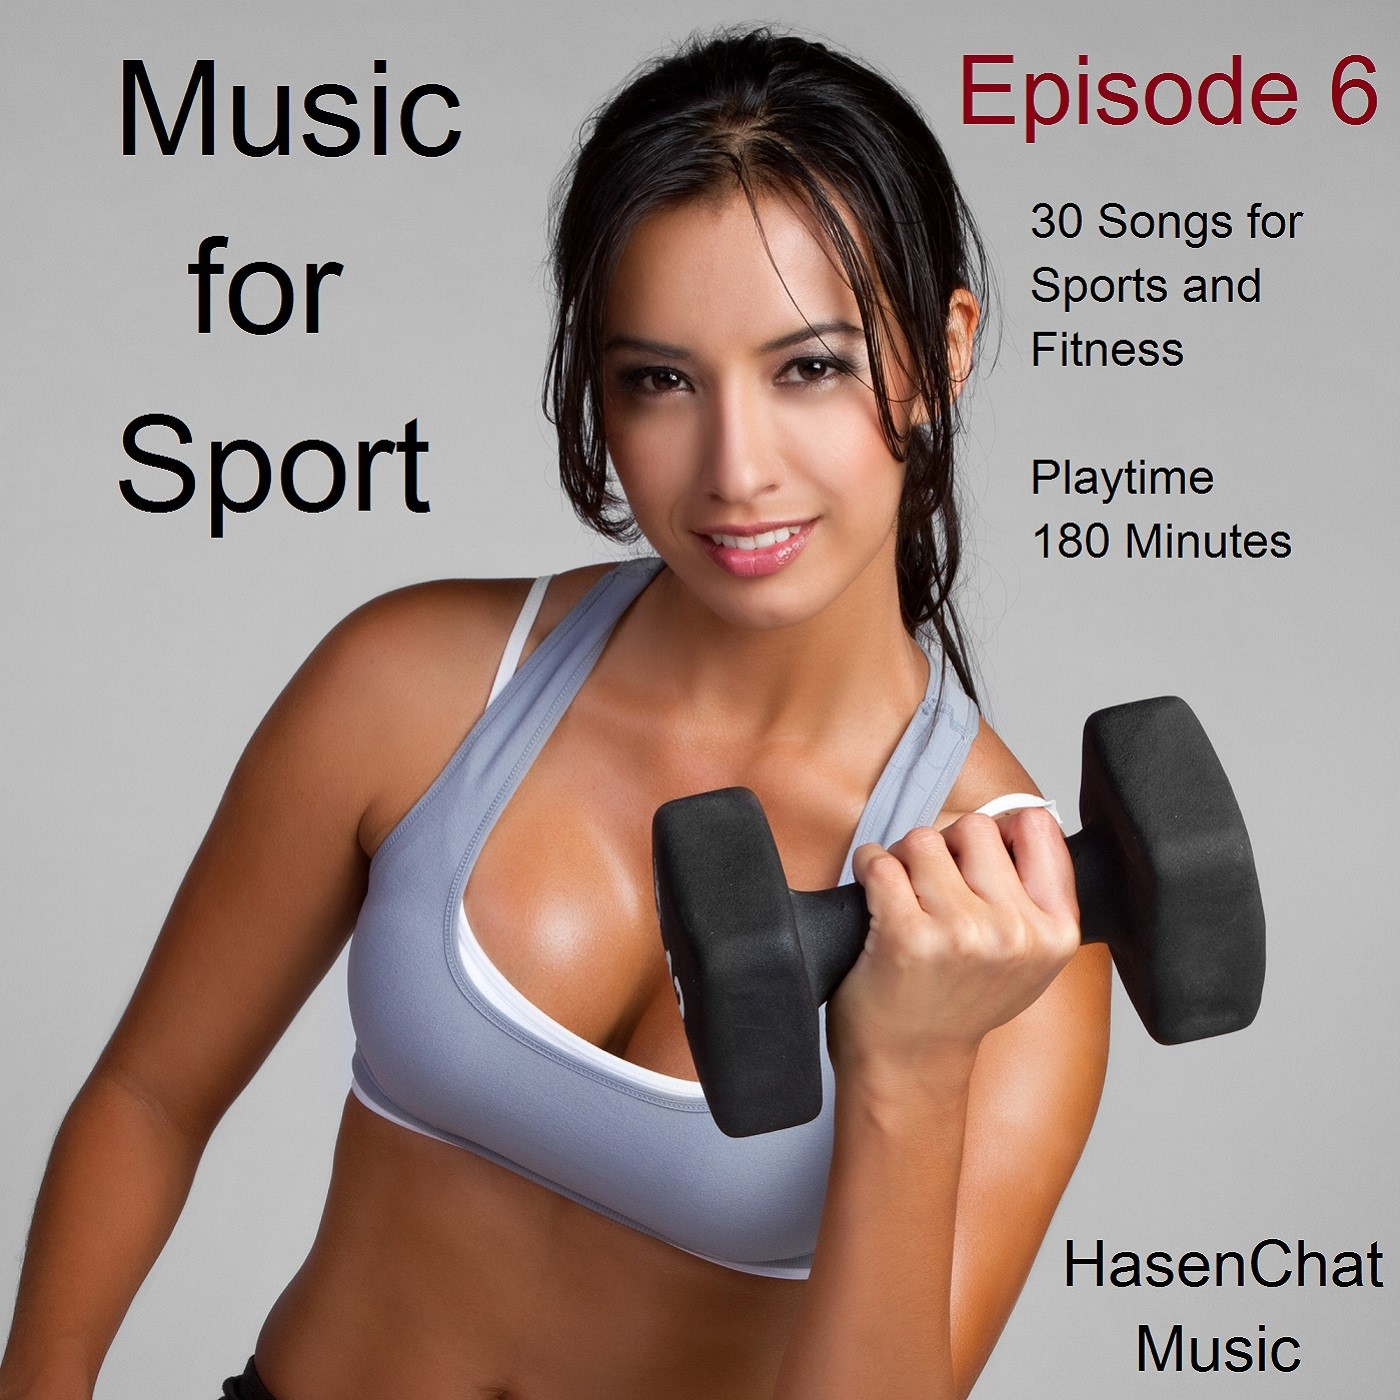 HasenChat Music - Music for Sport 6